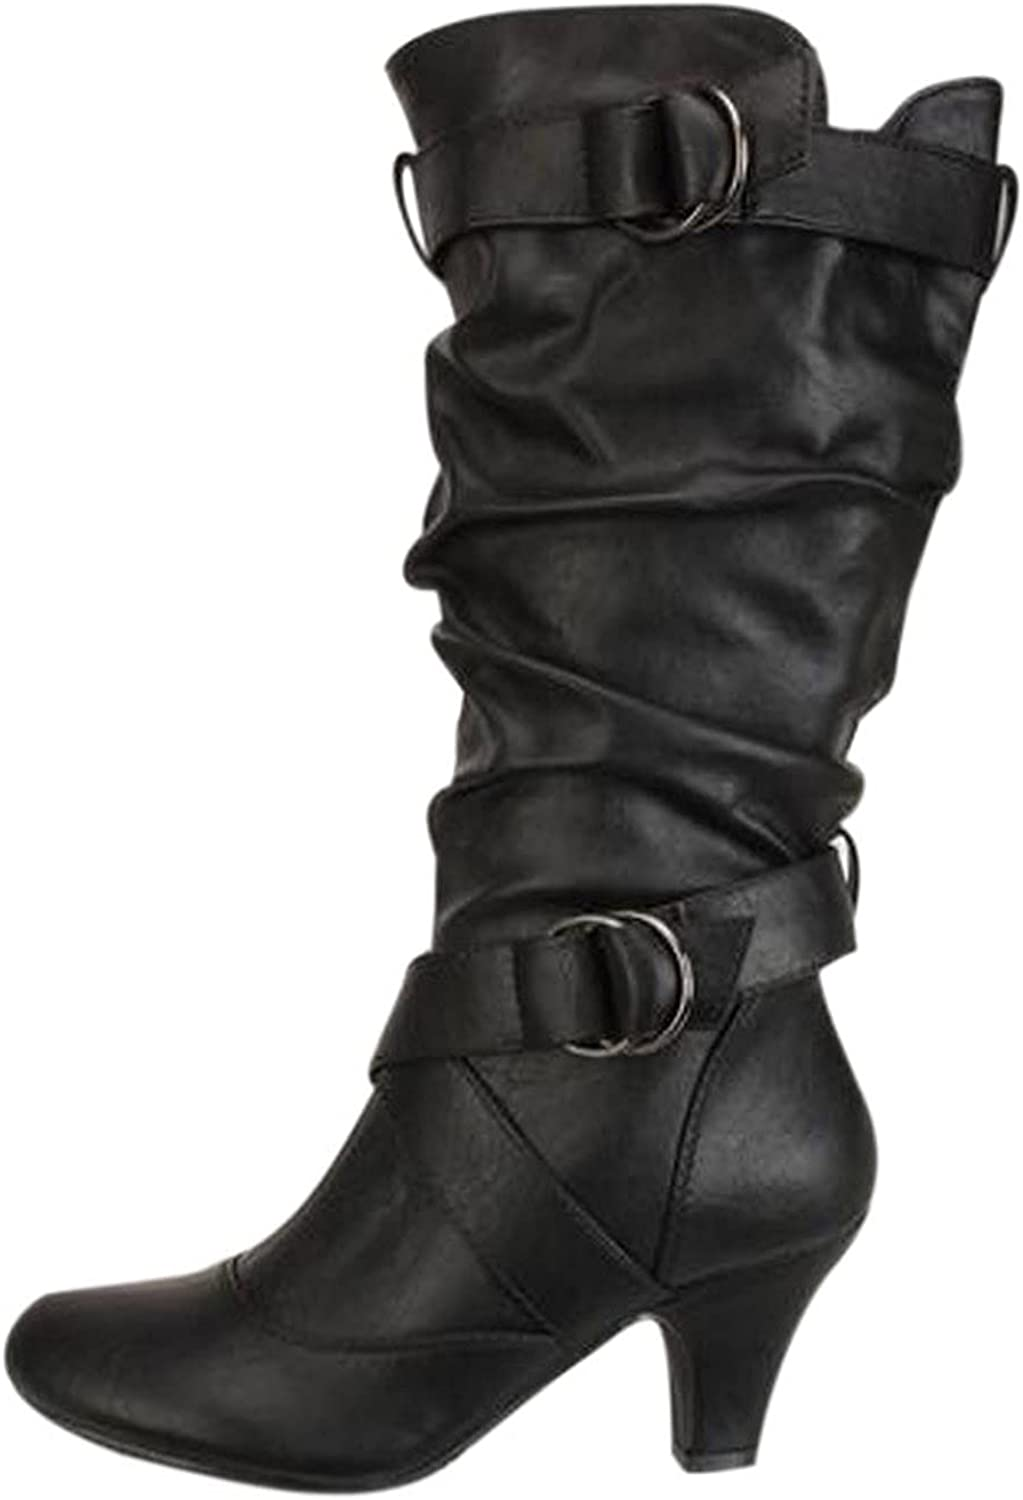 USYFAKGH Women's Boots High Heel Boots for Women Retro Booties Tapered Heel Boots Shoes